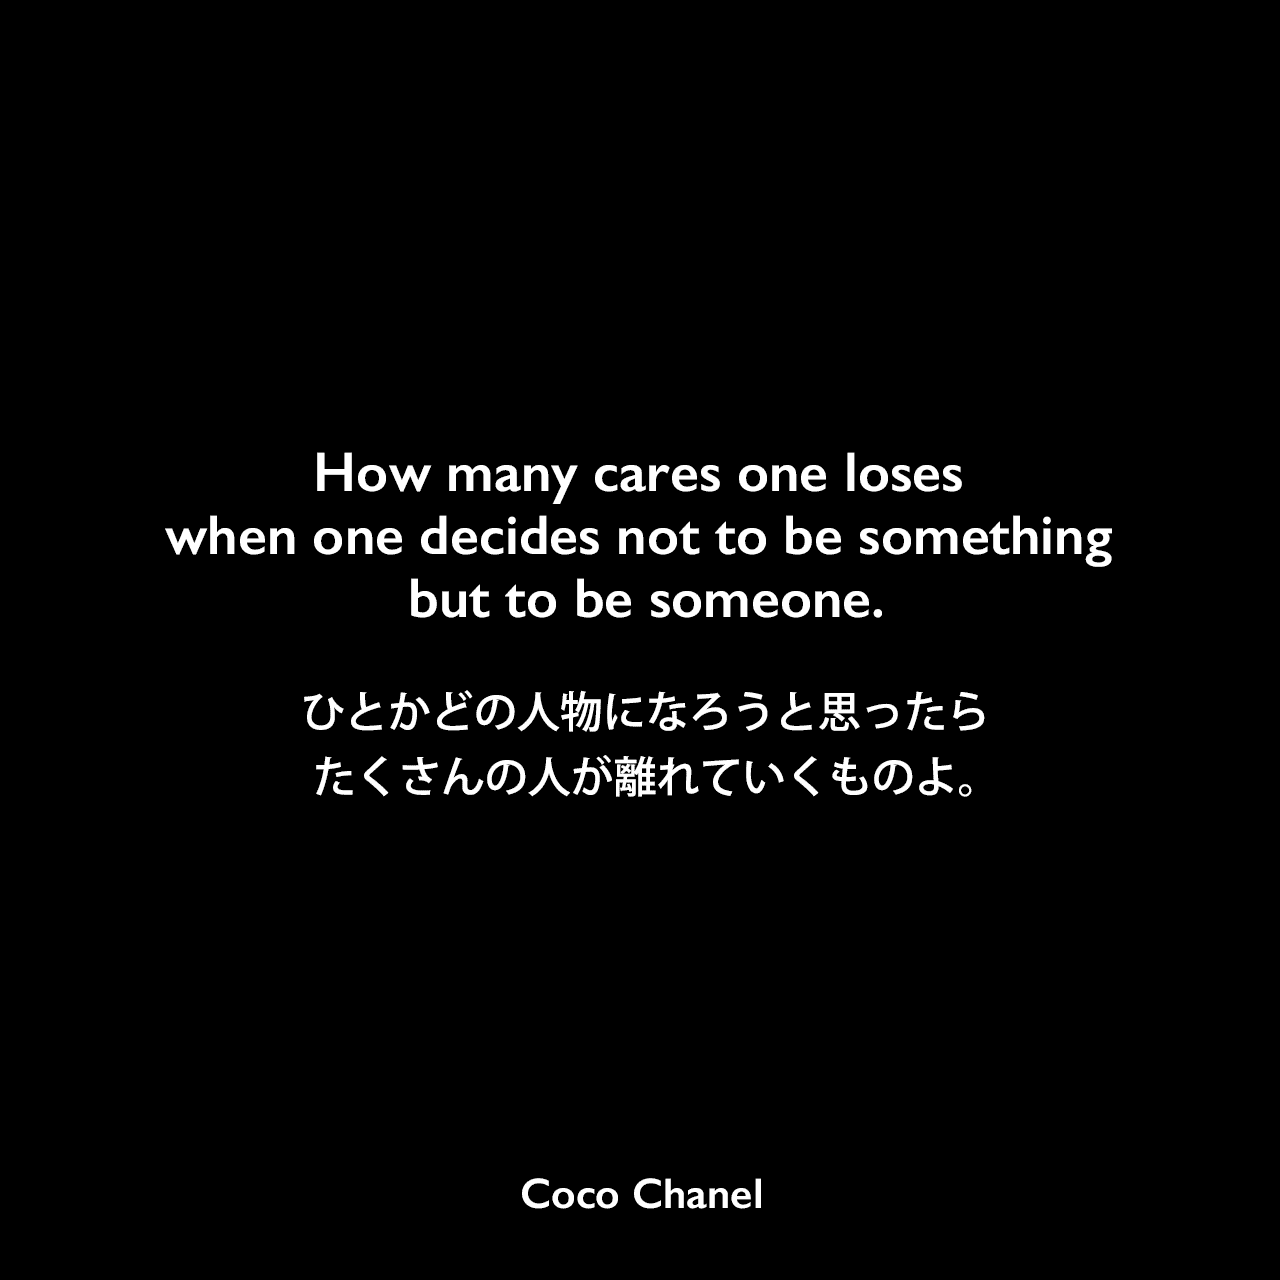 How many cares one loses when one decides not to be something but to be someone.ひとかどの人物になろうと思ったら、たくさんの人が離れていくものよ。- ジェームス・B・シンプソンの本「Contemporary Quotations‎」よりCoco Chanel